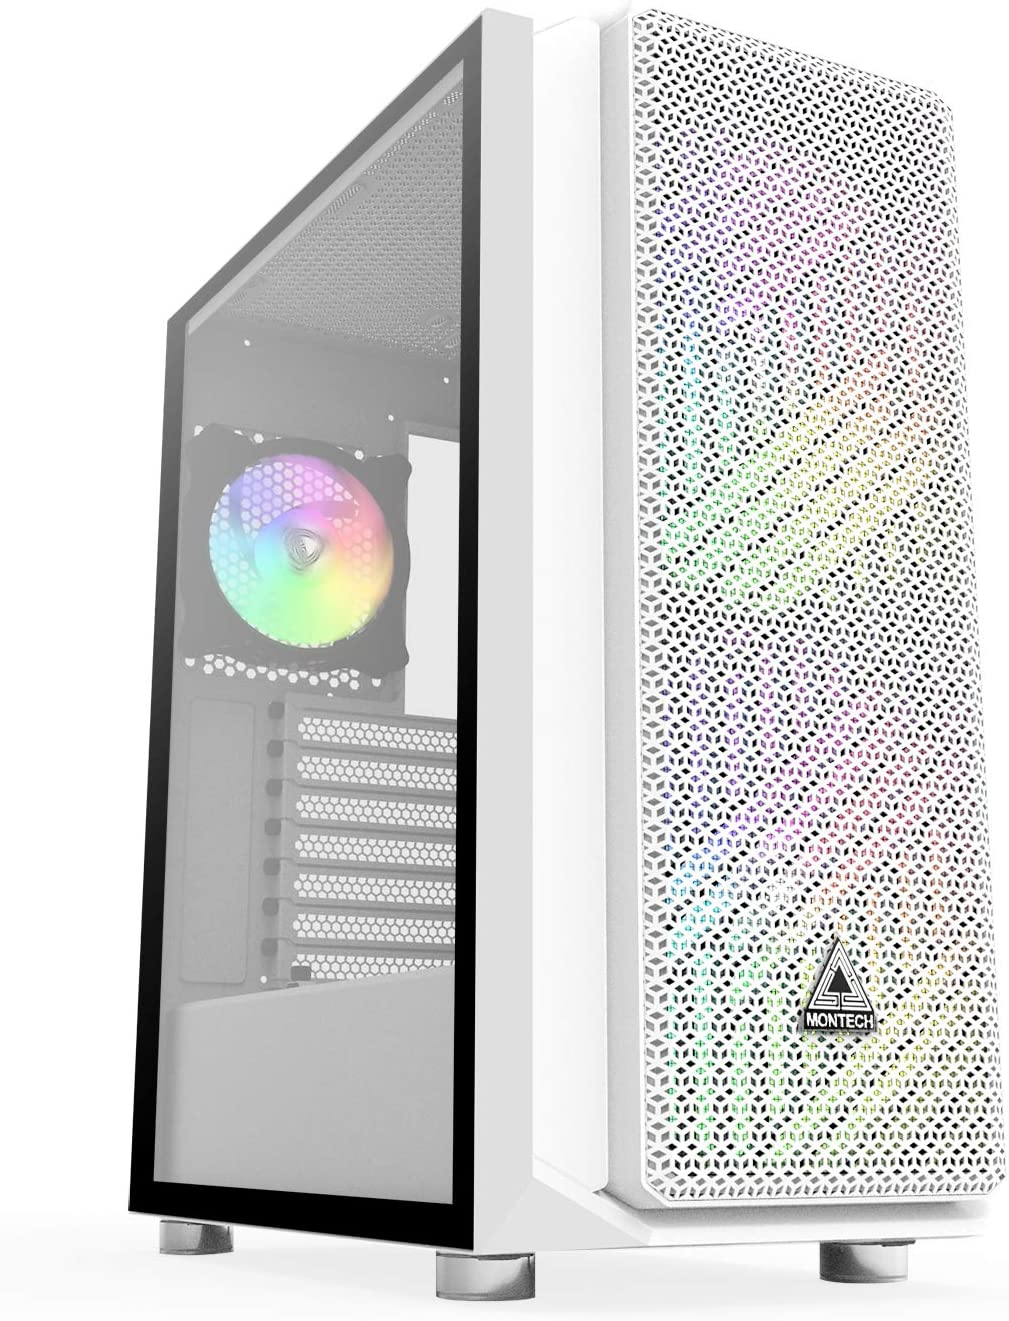 Montech AIR X ARGB White Super High Airflow Motherboard Sync ATX Mid-Tower Case with 2 200mm 5V Addressable RGB Fan + 1 120mm Addressable RGB Fan+ Fan Controller Pre-Installed